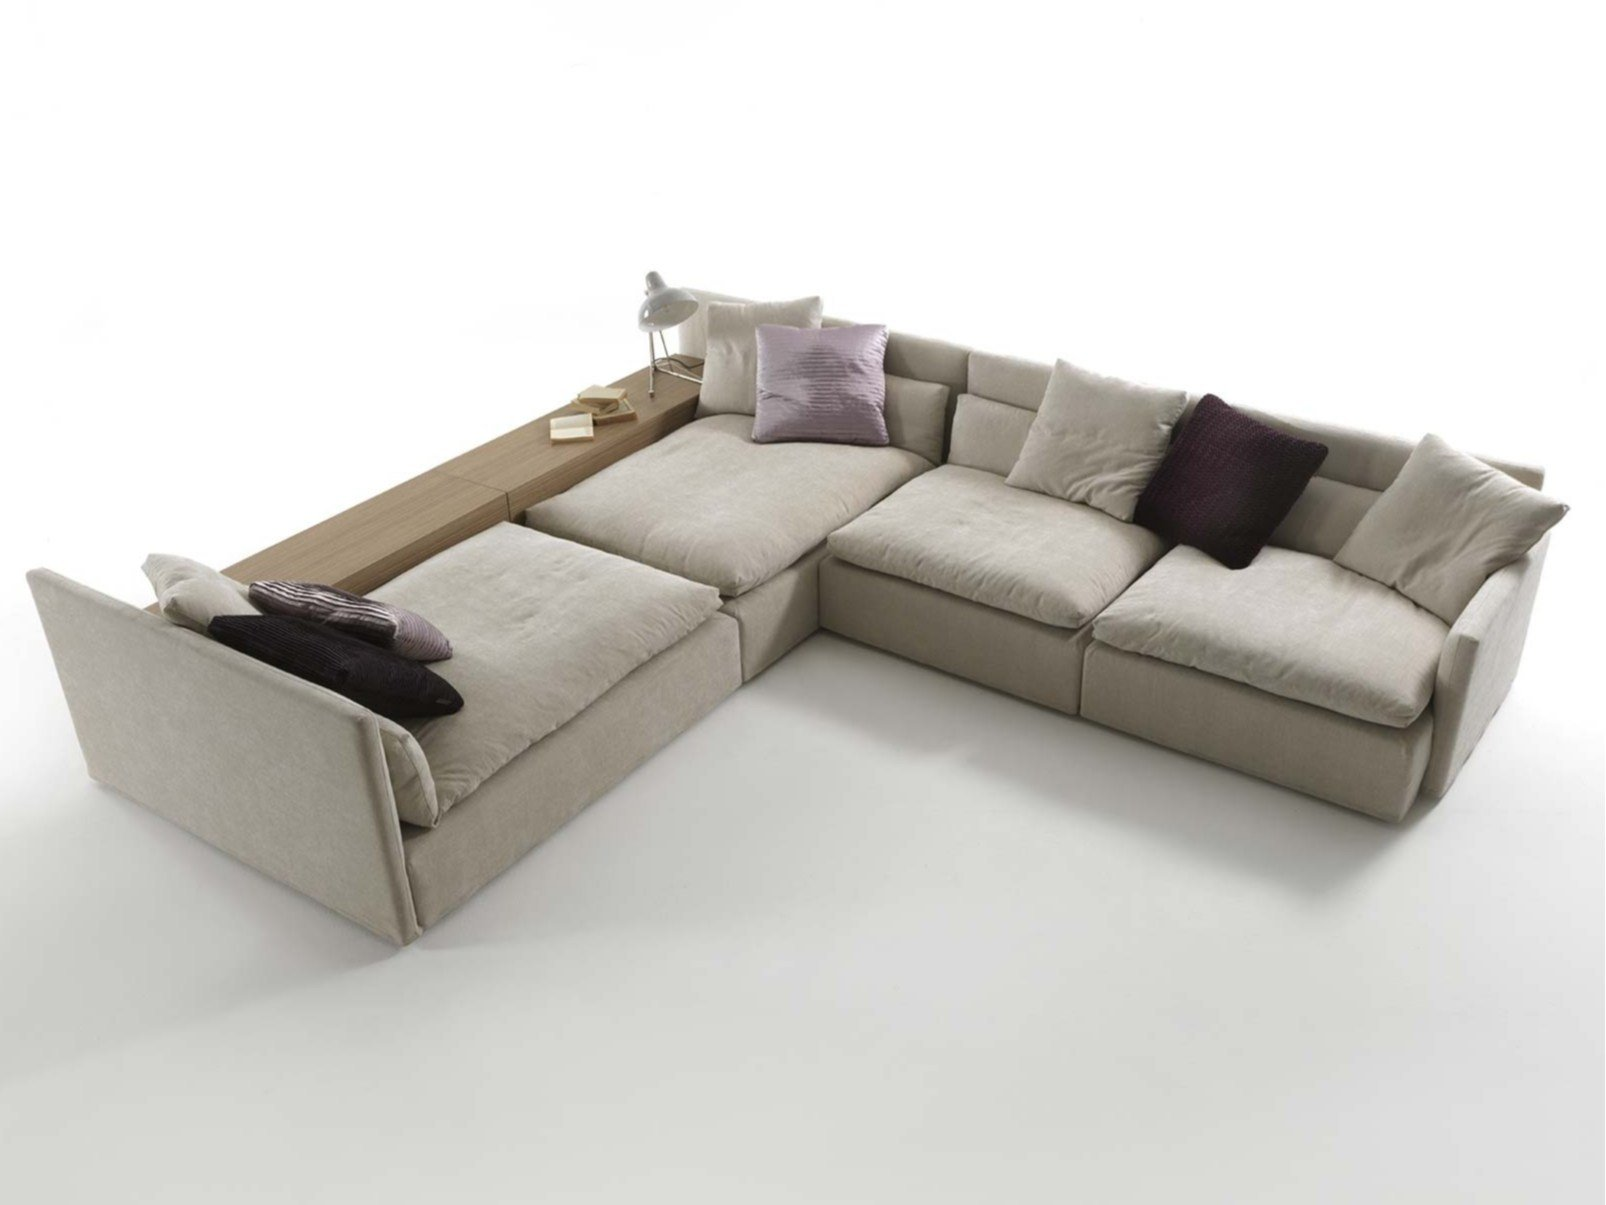 domino fabric sofa by frigerio poltrone e divani